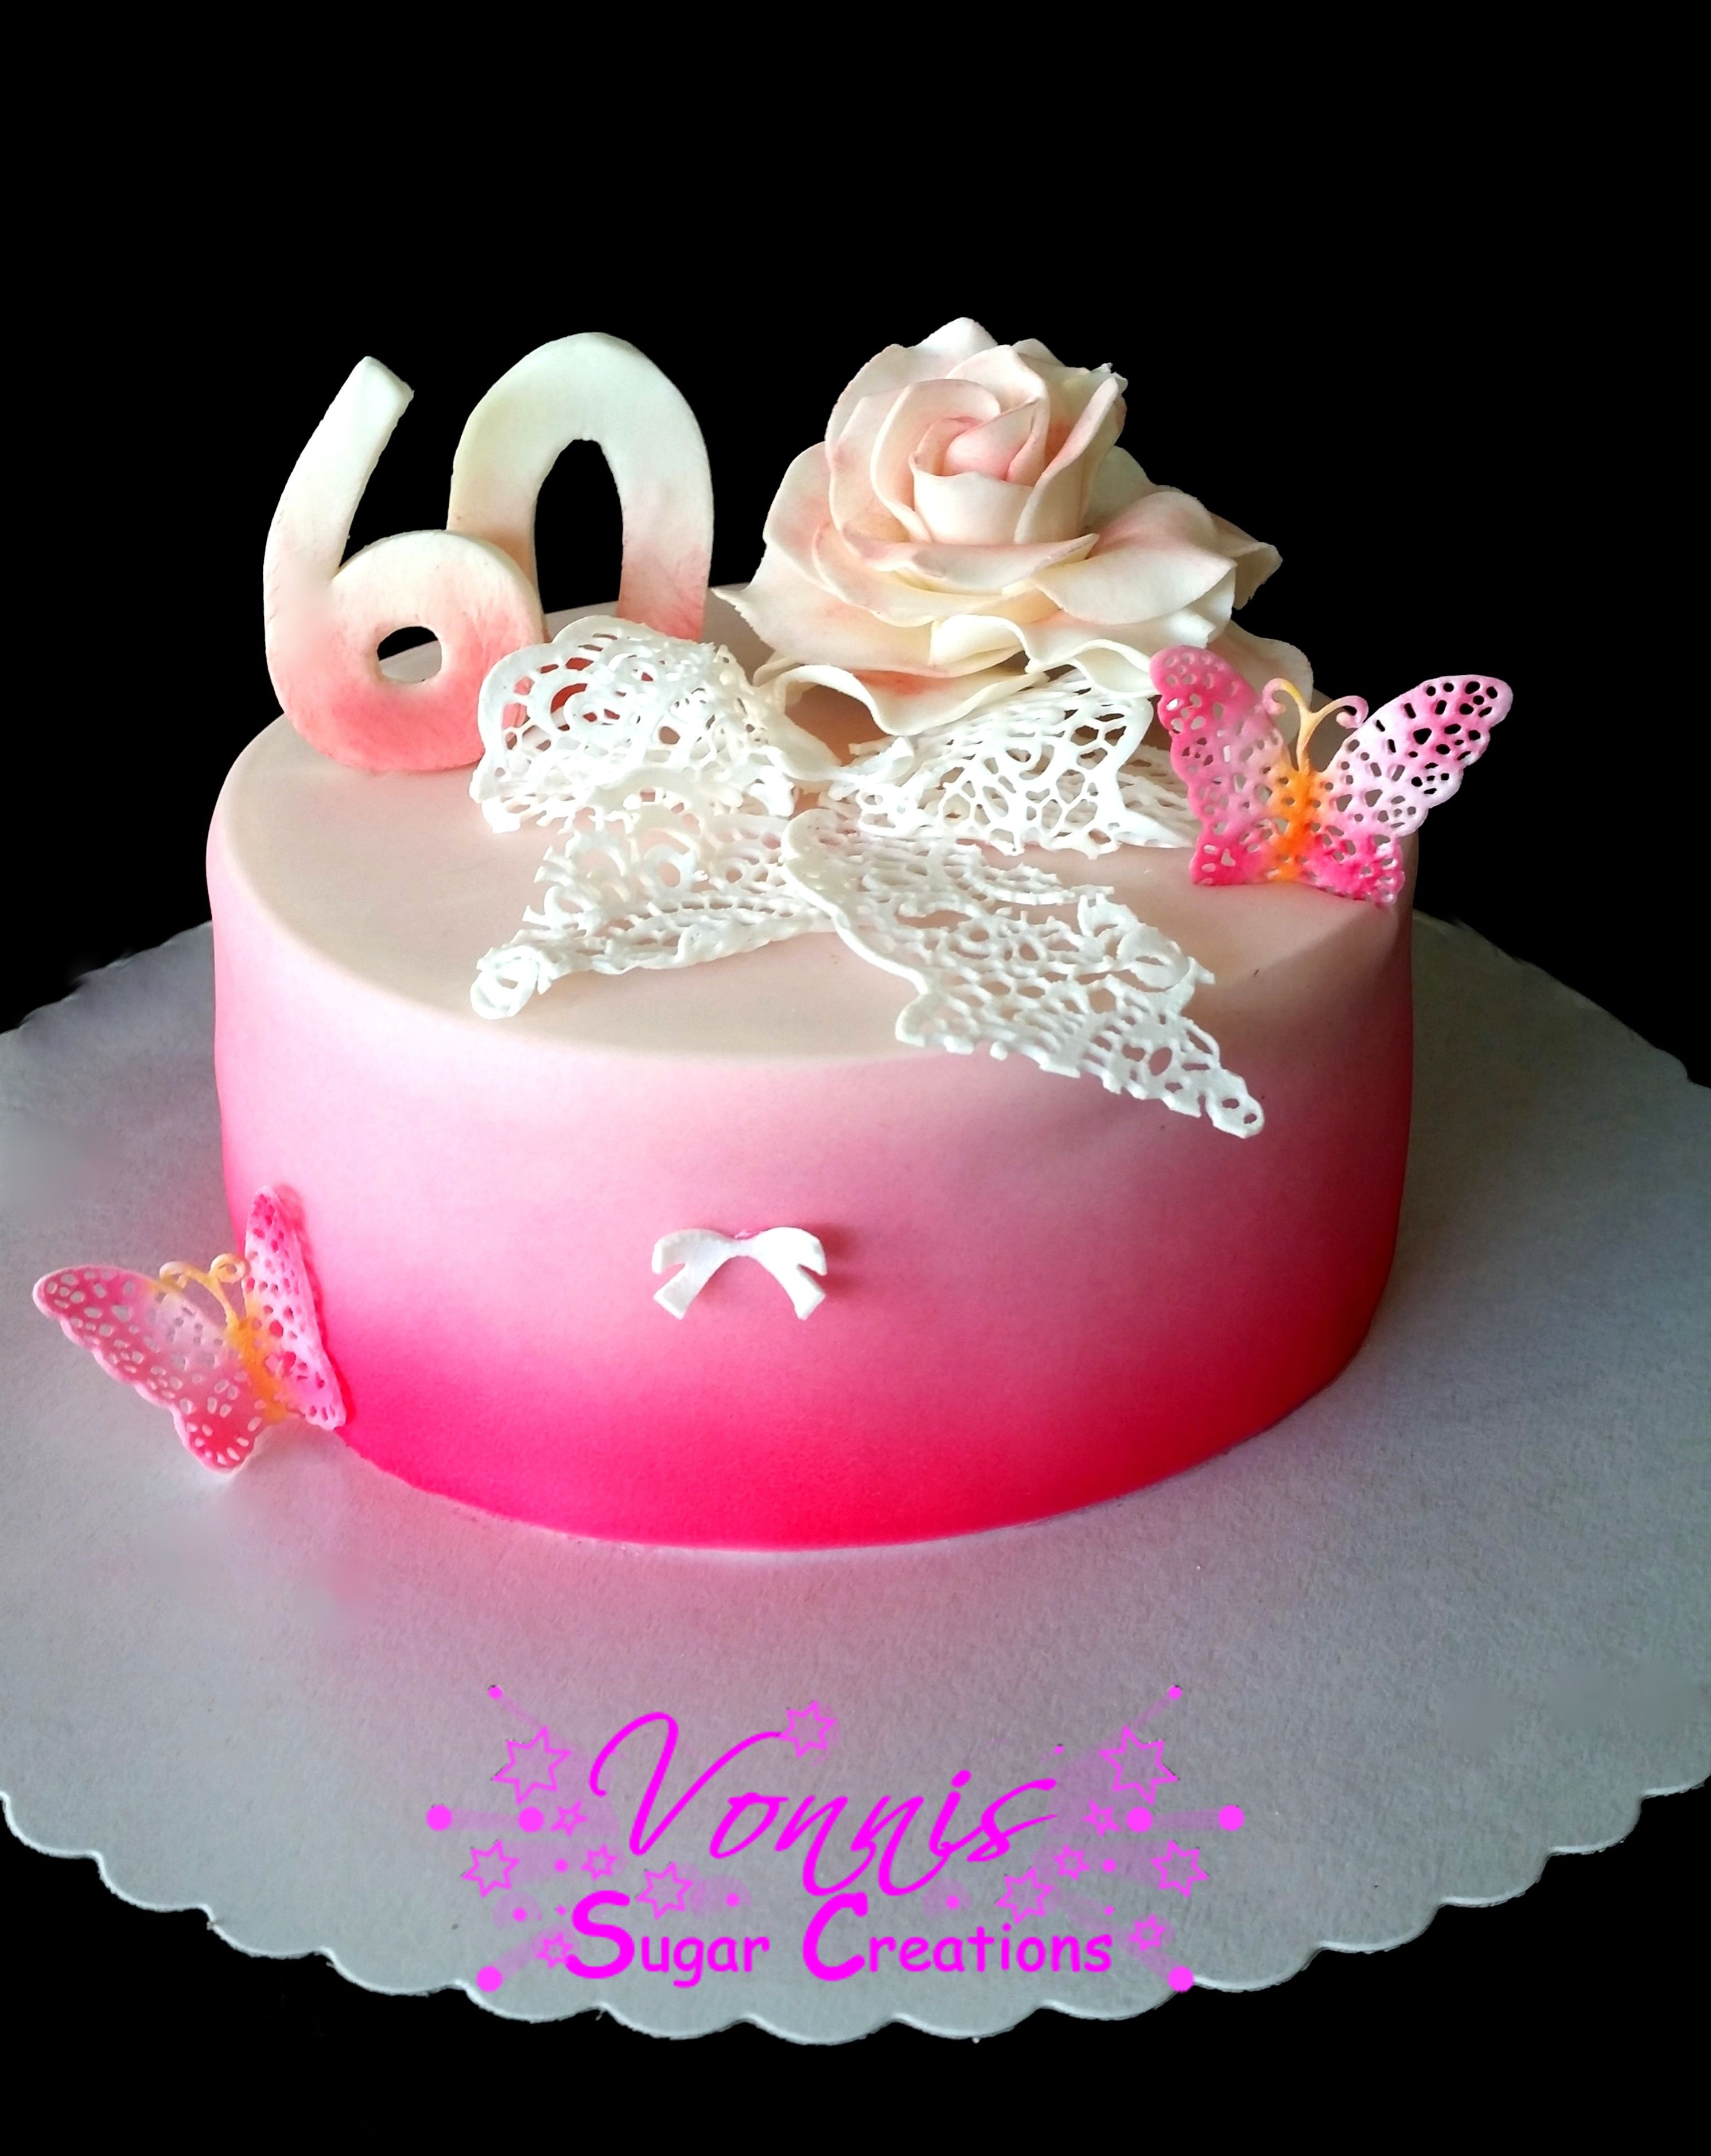 60 bithday cake cake lace airbrush fondant butterfly bow rose 60 geburtstag kuchen torte. Black Bedroom Furniture Sets. Home Design Ideas